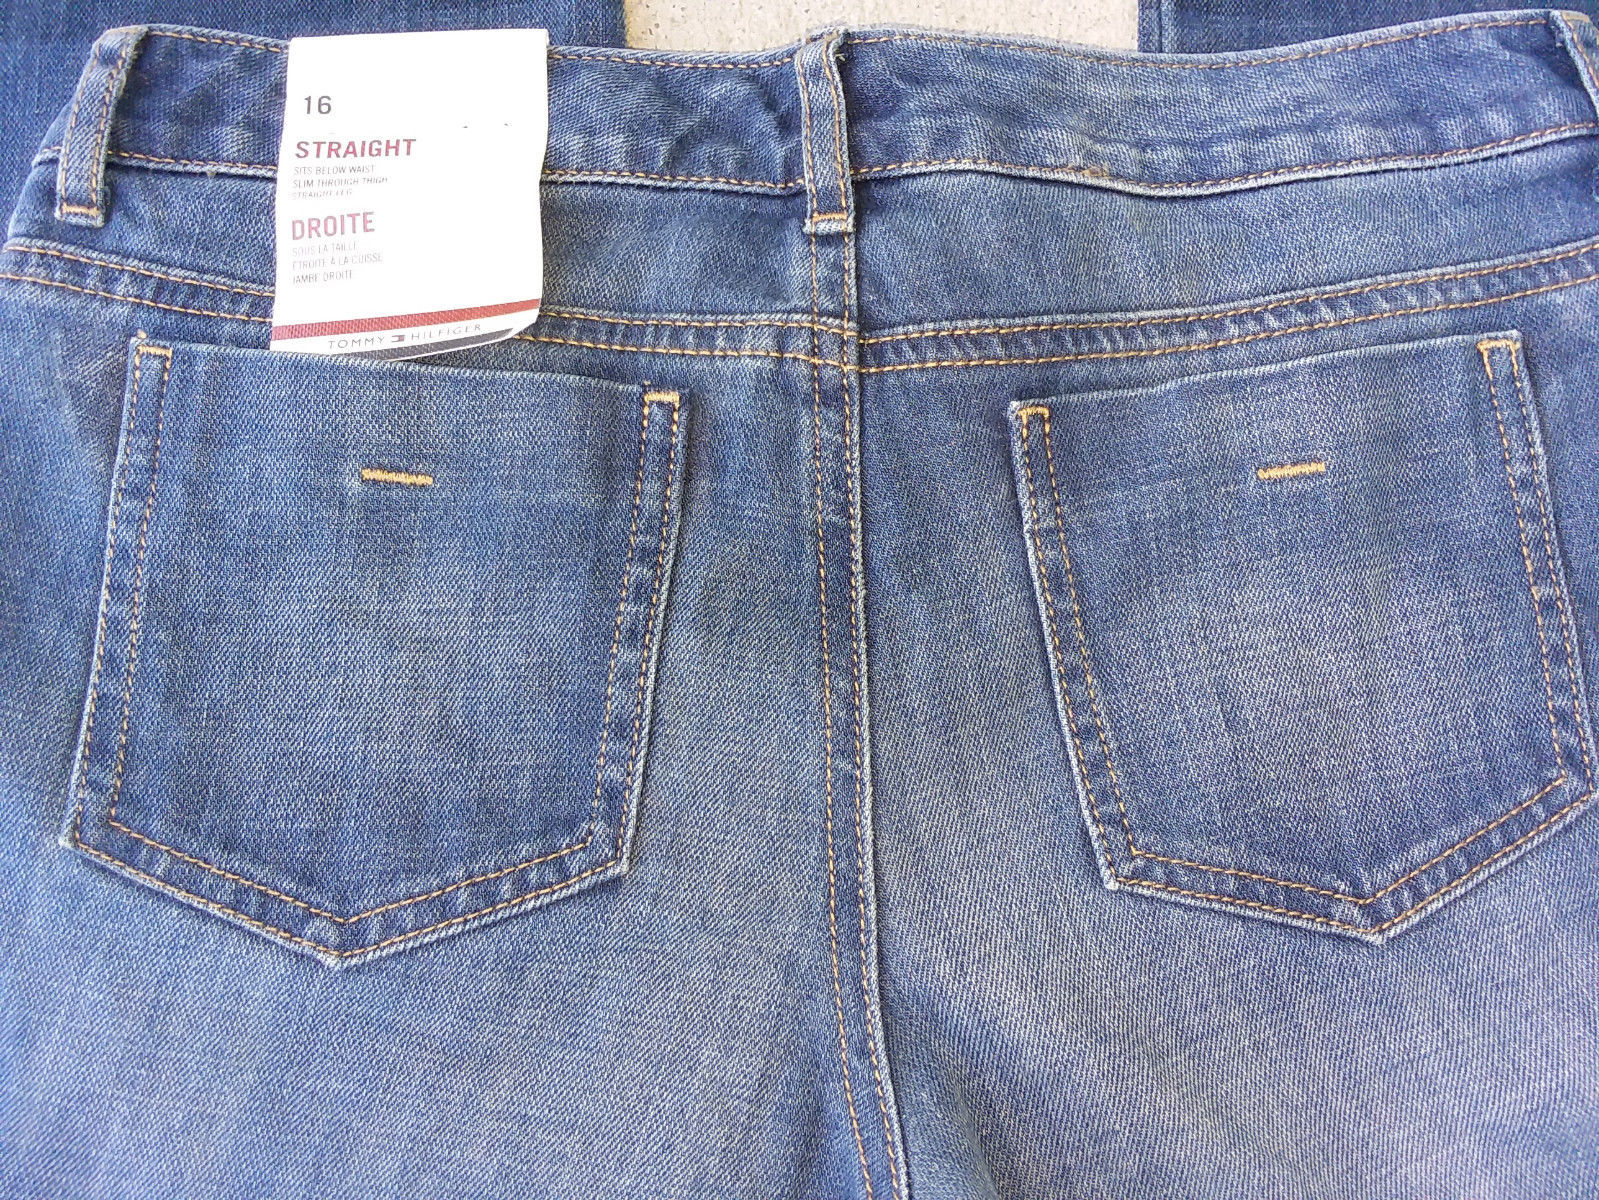 Tommy Hilfiger Girl's Below the Waist Jeans, 16 image 5